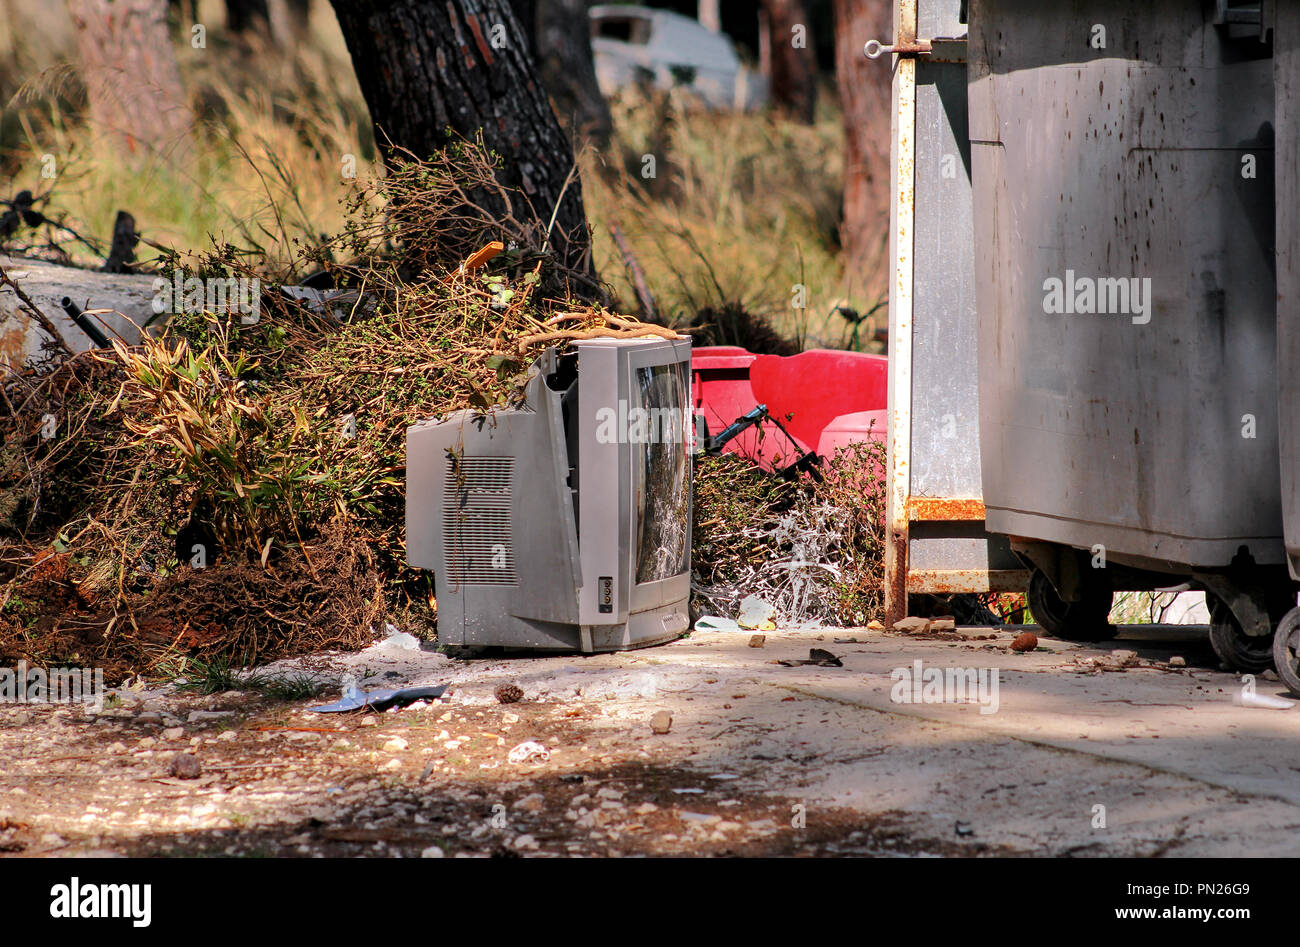 Discard old TV sets on a street, television near the container thrown, the natural environment. A TV thrown out with the garbage. Throwing out garbage - Stock Image